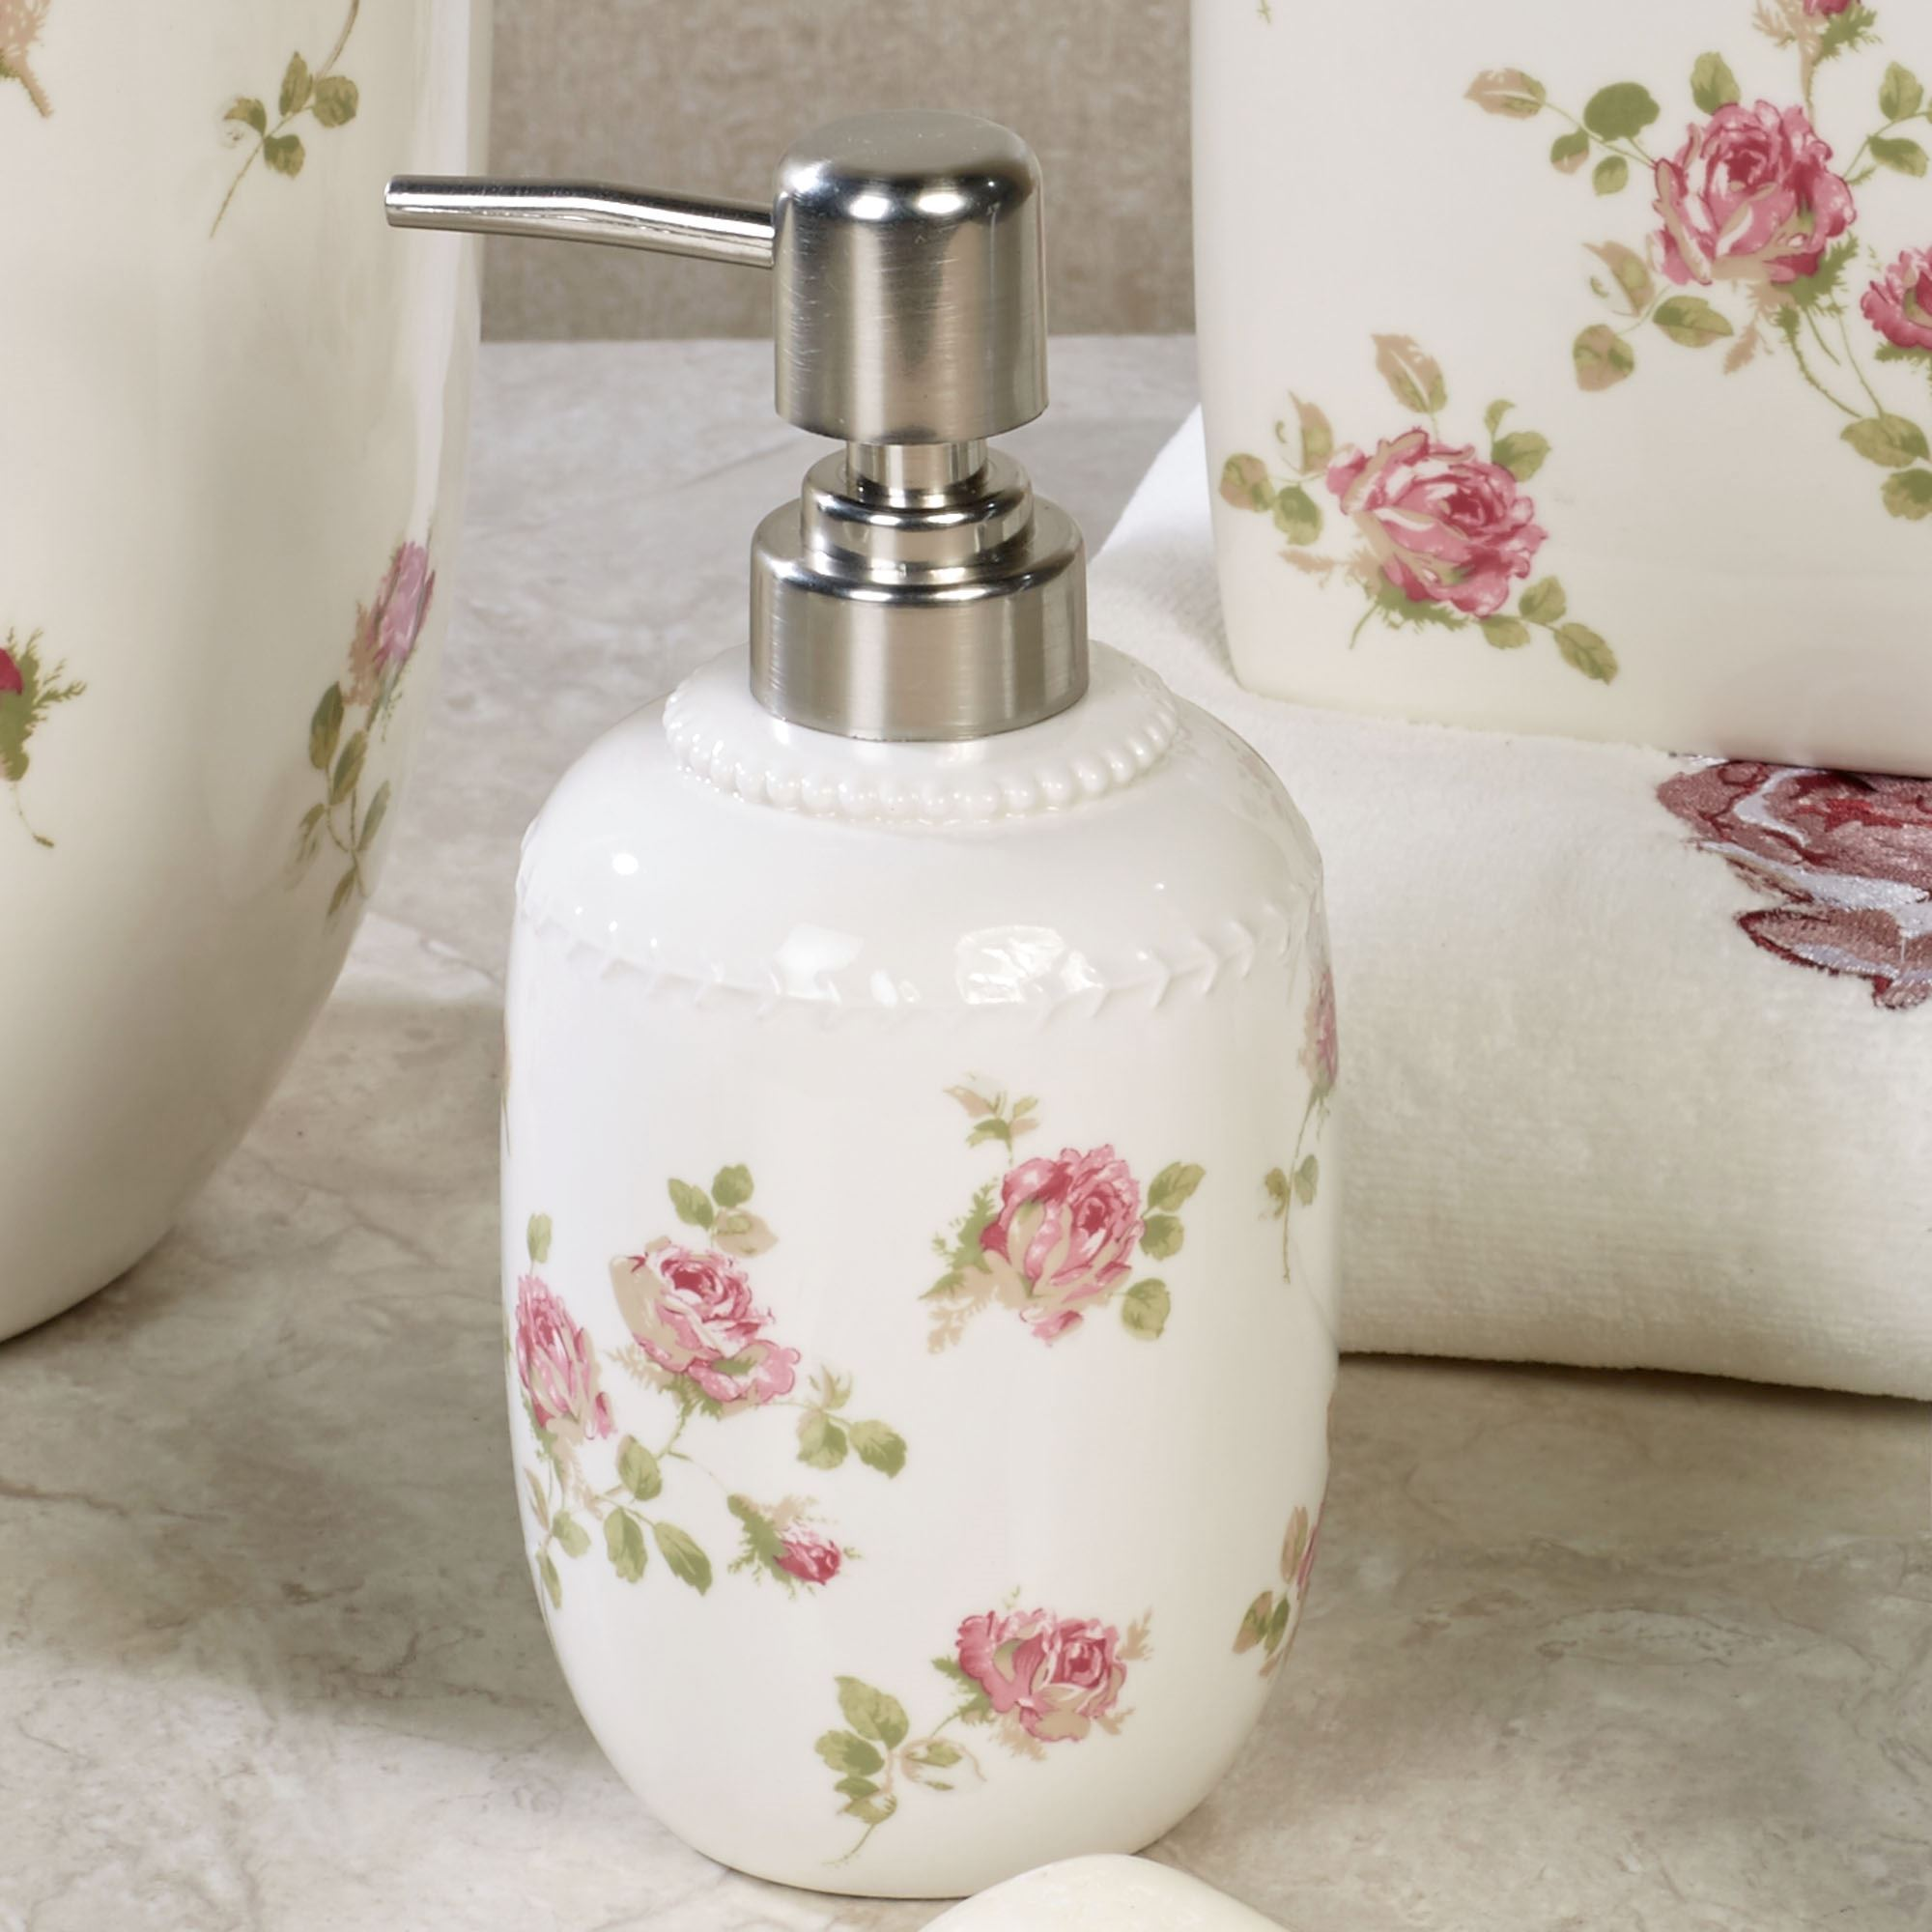 Rosalie pink floral shower curtain by piper wright - Bathroom soap and lotion dispenser set ...